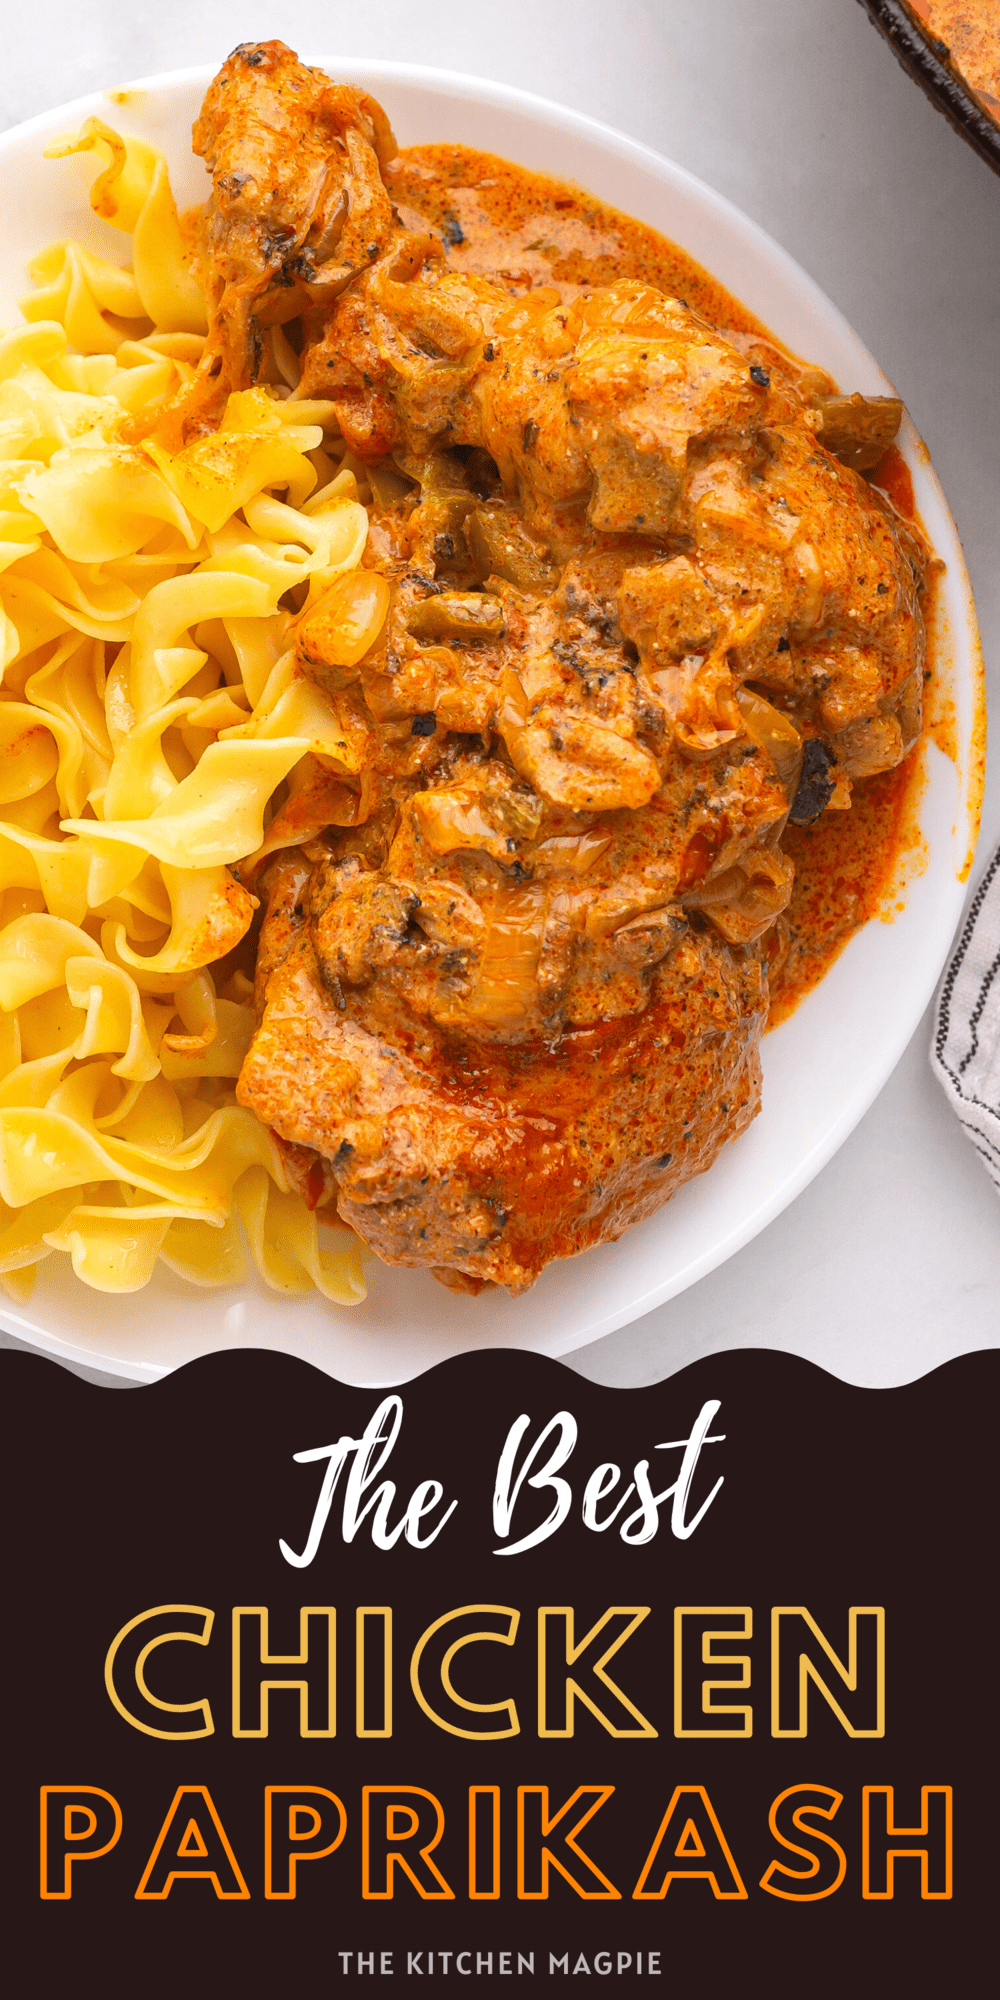 Chicken thighs and legs are simmered in a smoky, decadent paprika based vegetable sauce until tender perfection! Serve over egg noodles, rice or dumplings!